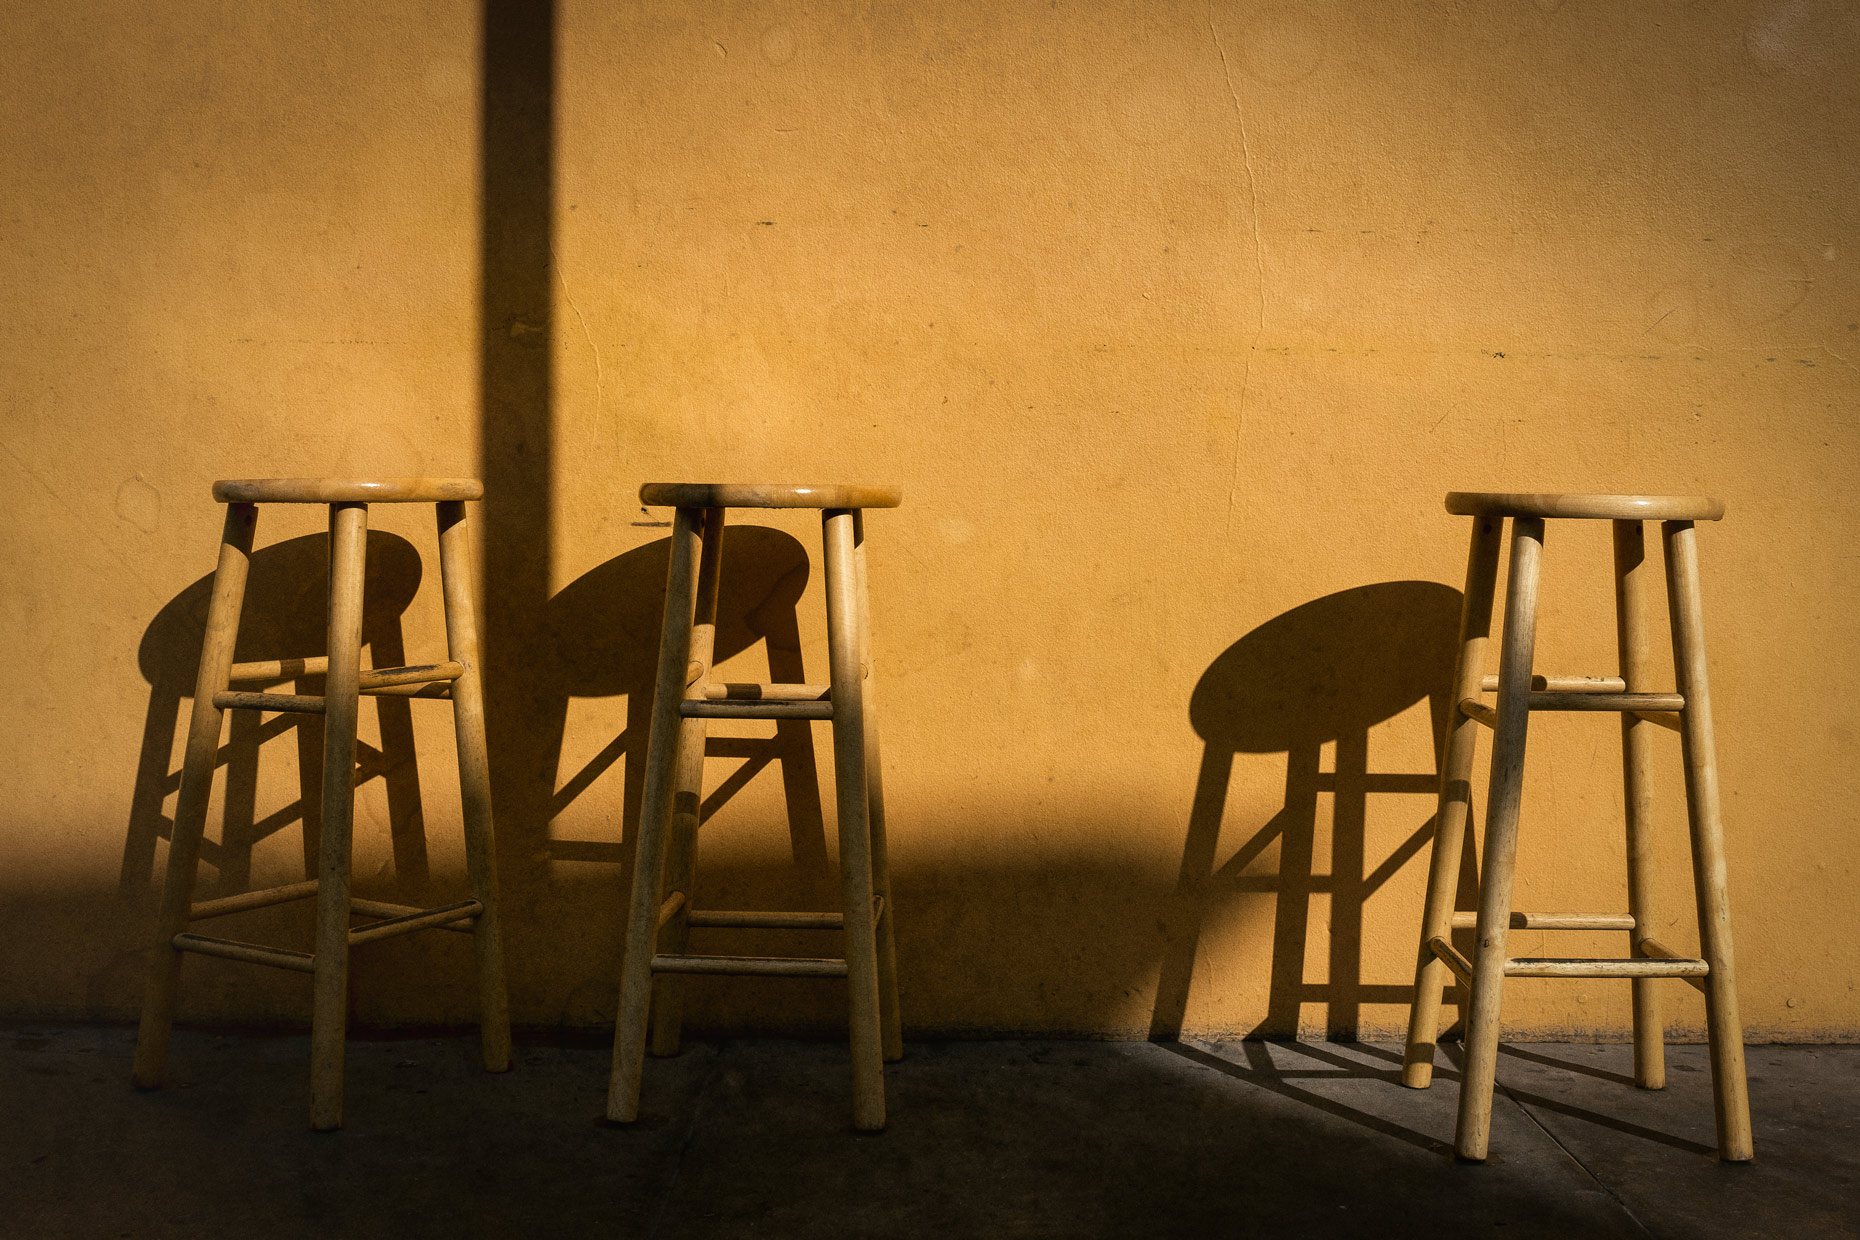 Stools in New Orleans by photographer Kevin Brown